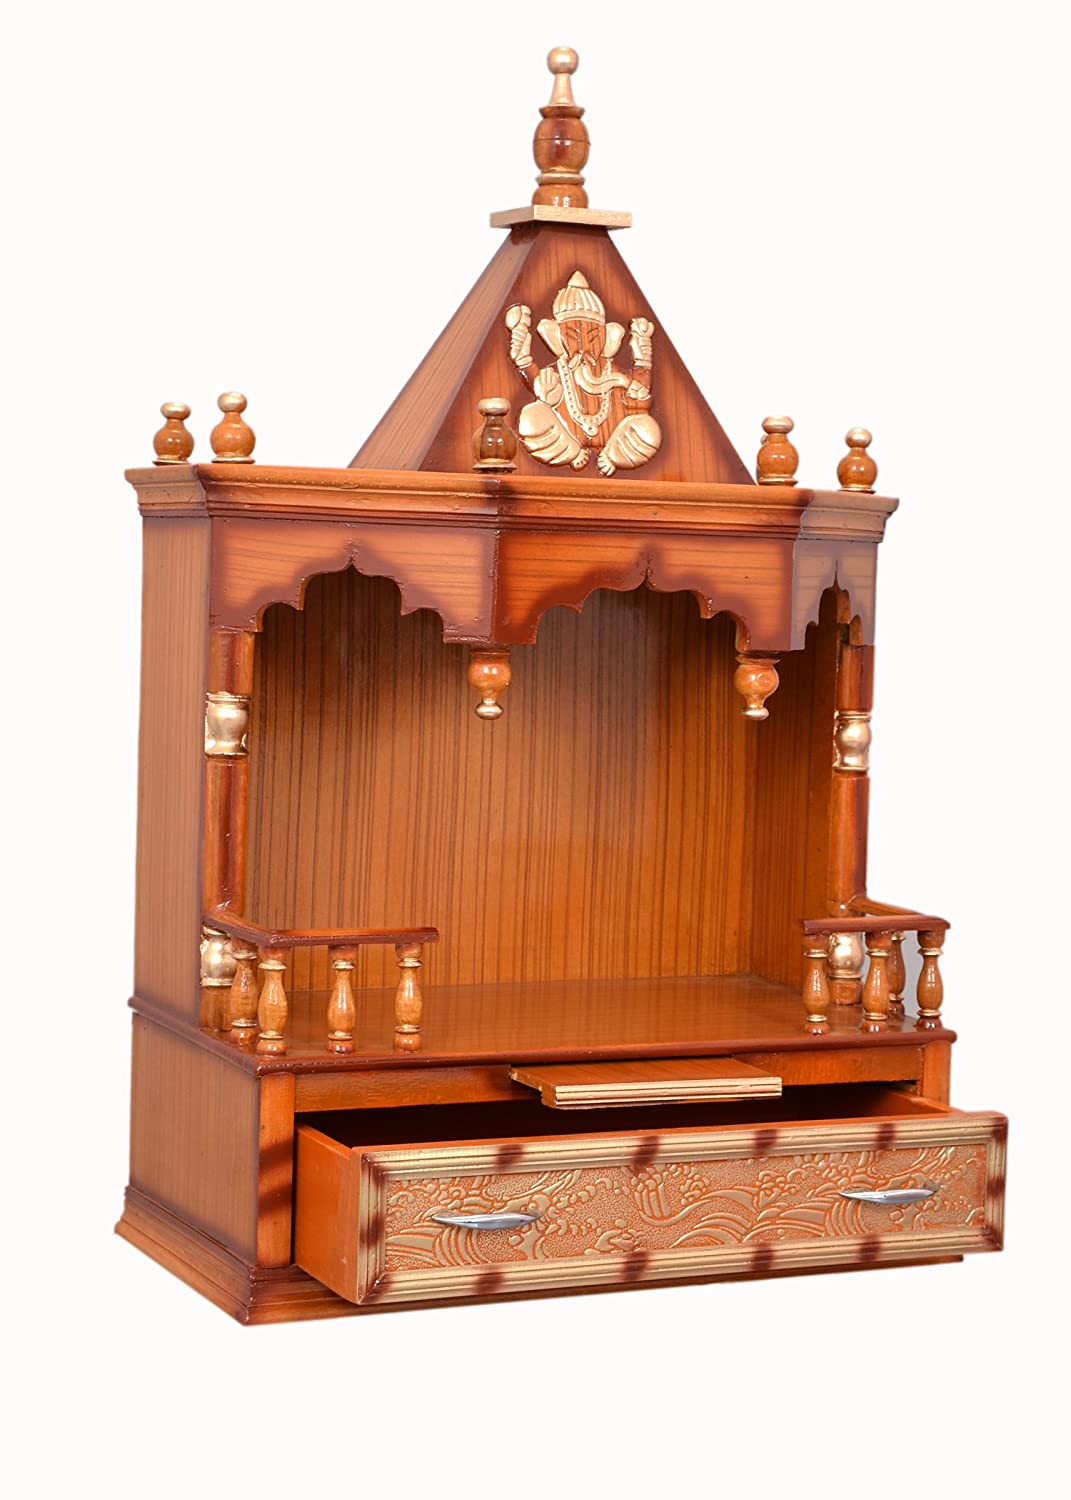 Emejing big wooden temple designs for home contemporary for Home mandir designs marble